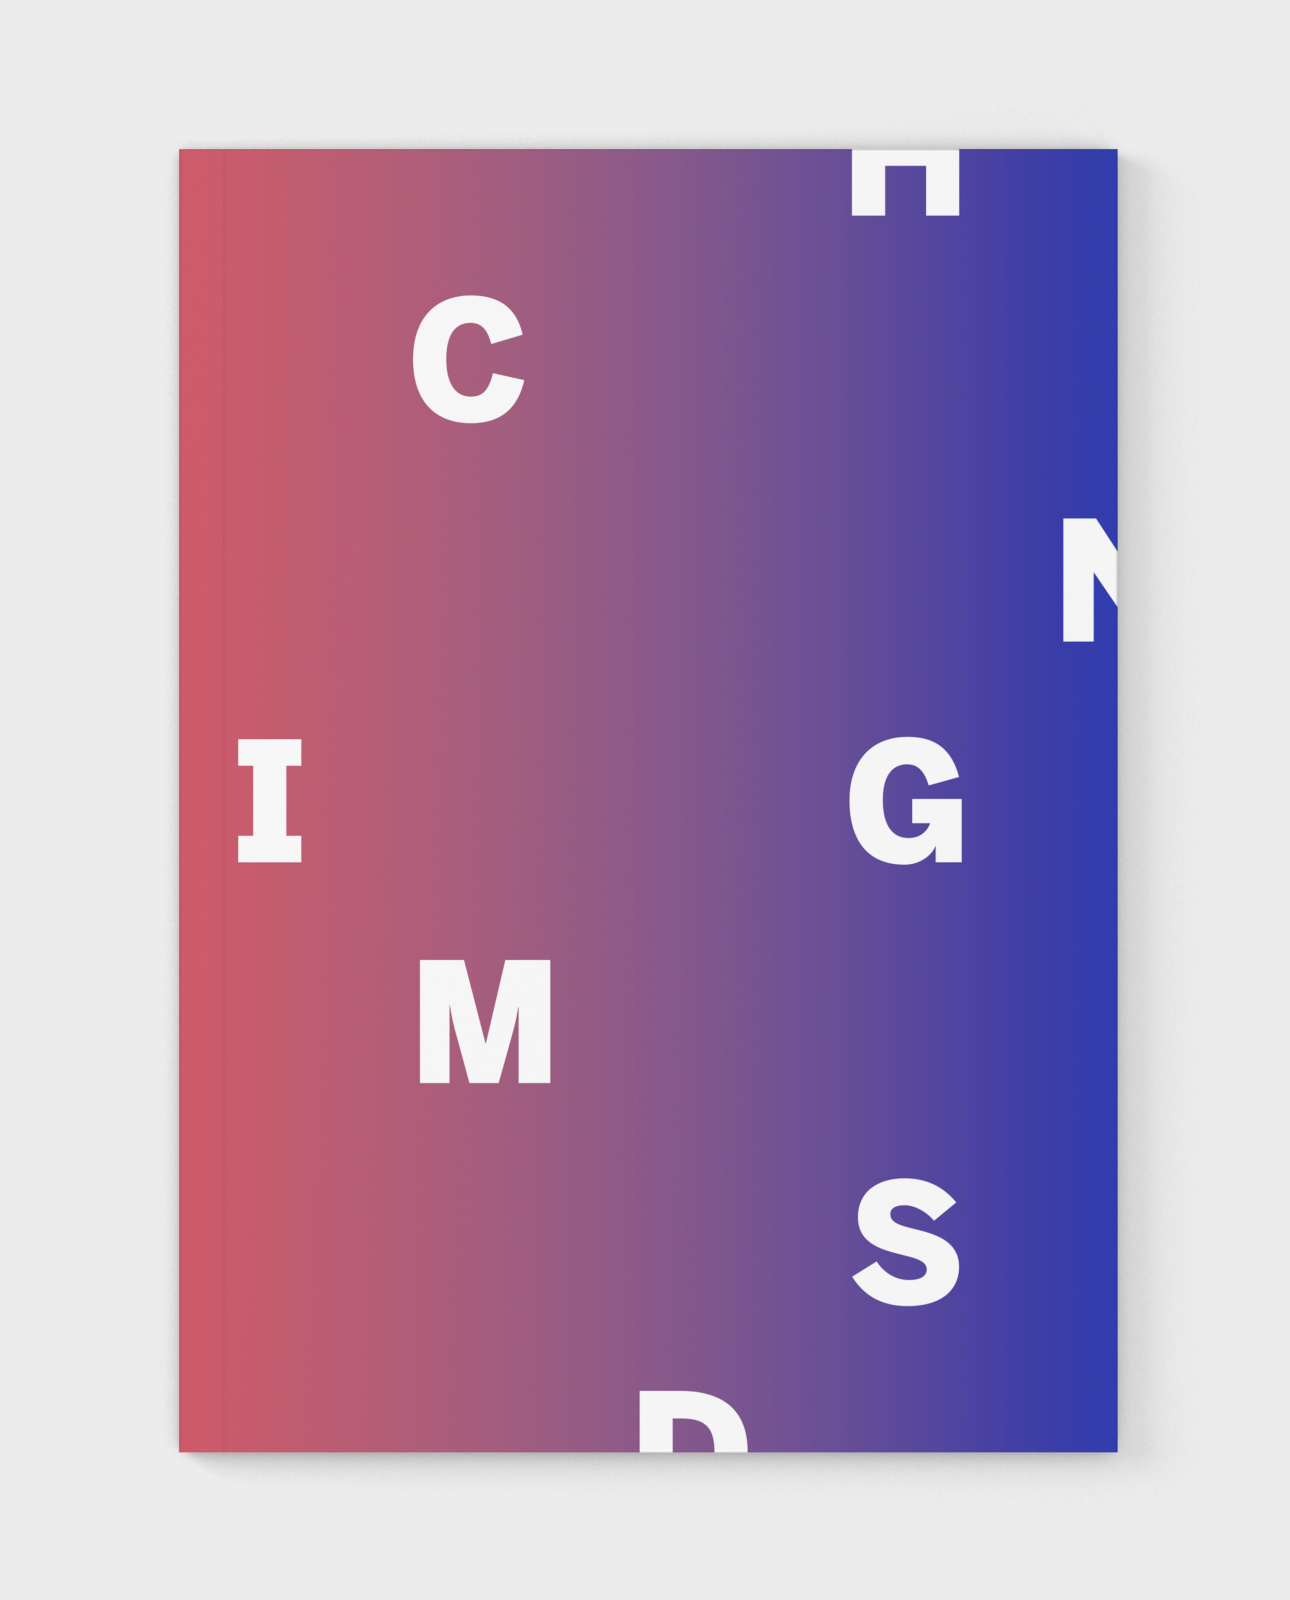 Front cover of the Changing Minds annual report design for The George Gund Foundation, with gradient and abstract typography